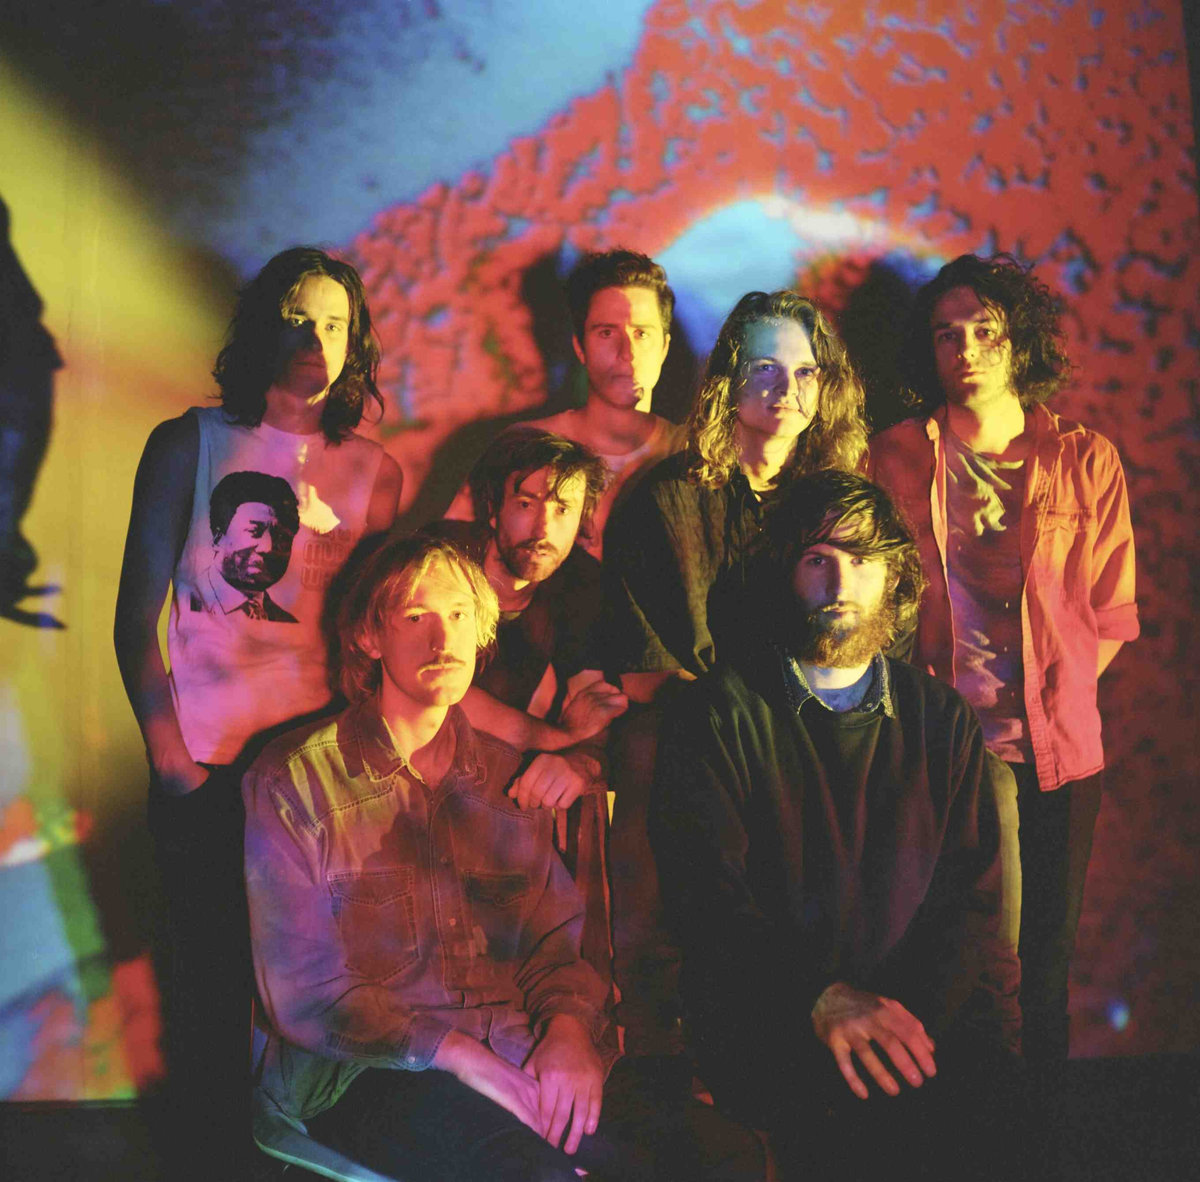 King Gizzard & The Lizard Wizard |  Murder of the Universe , released June 23, 2017.